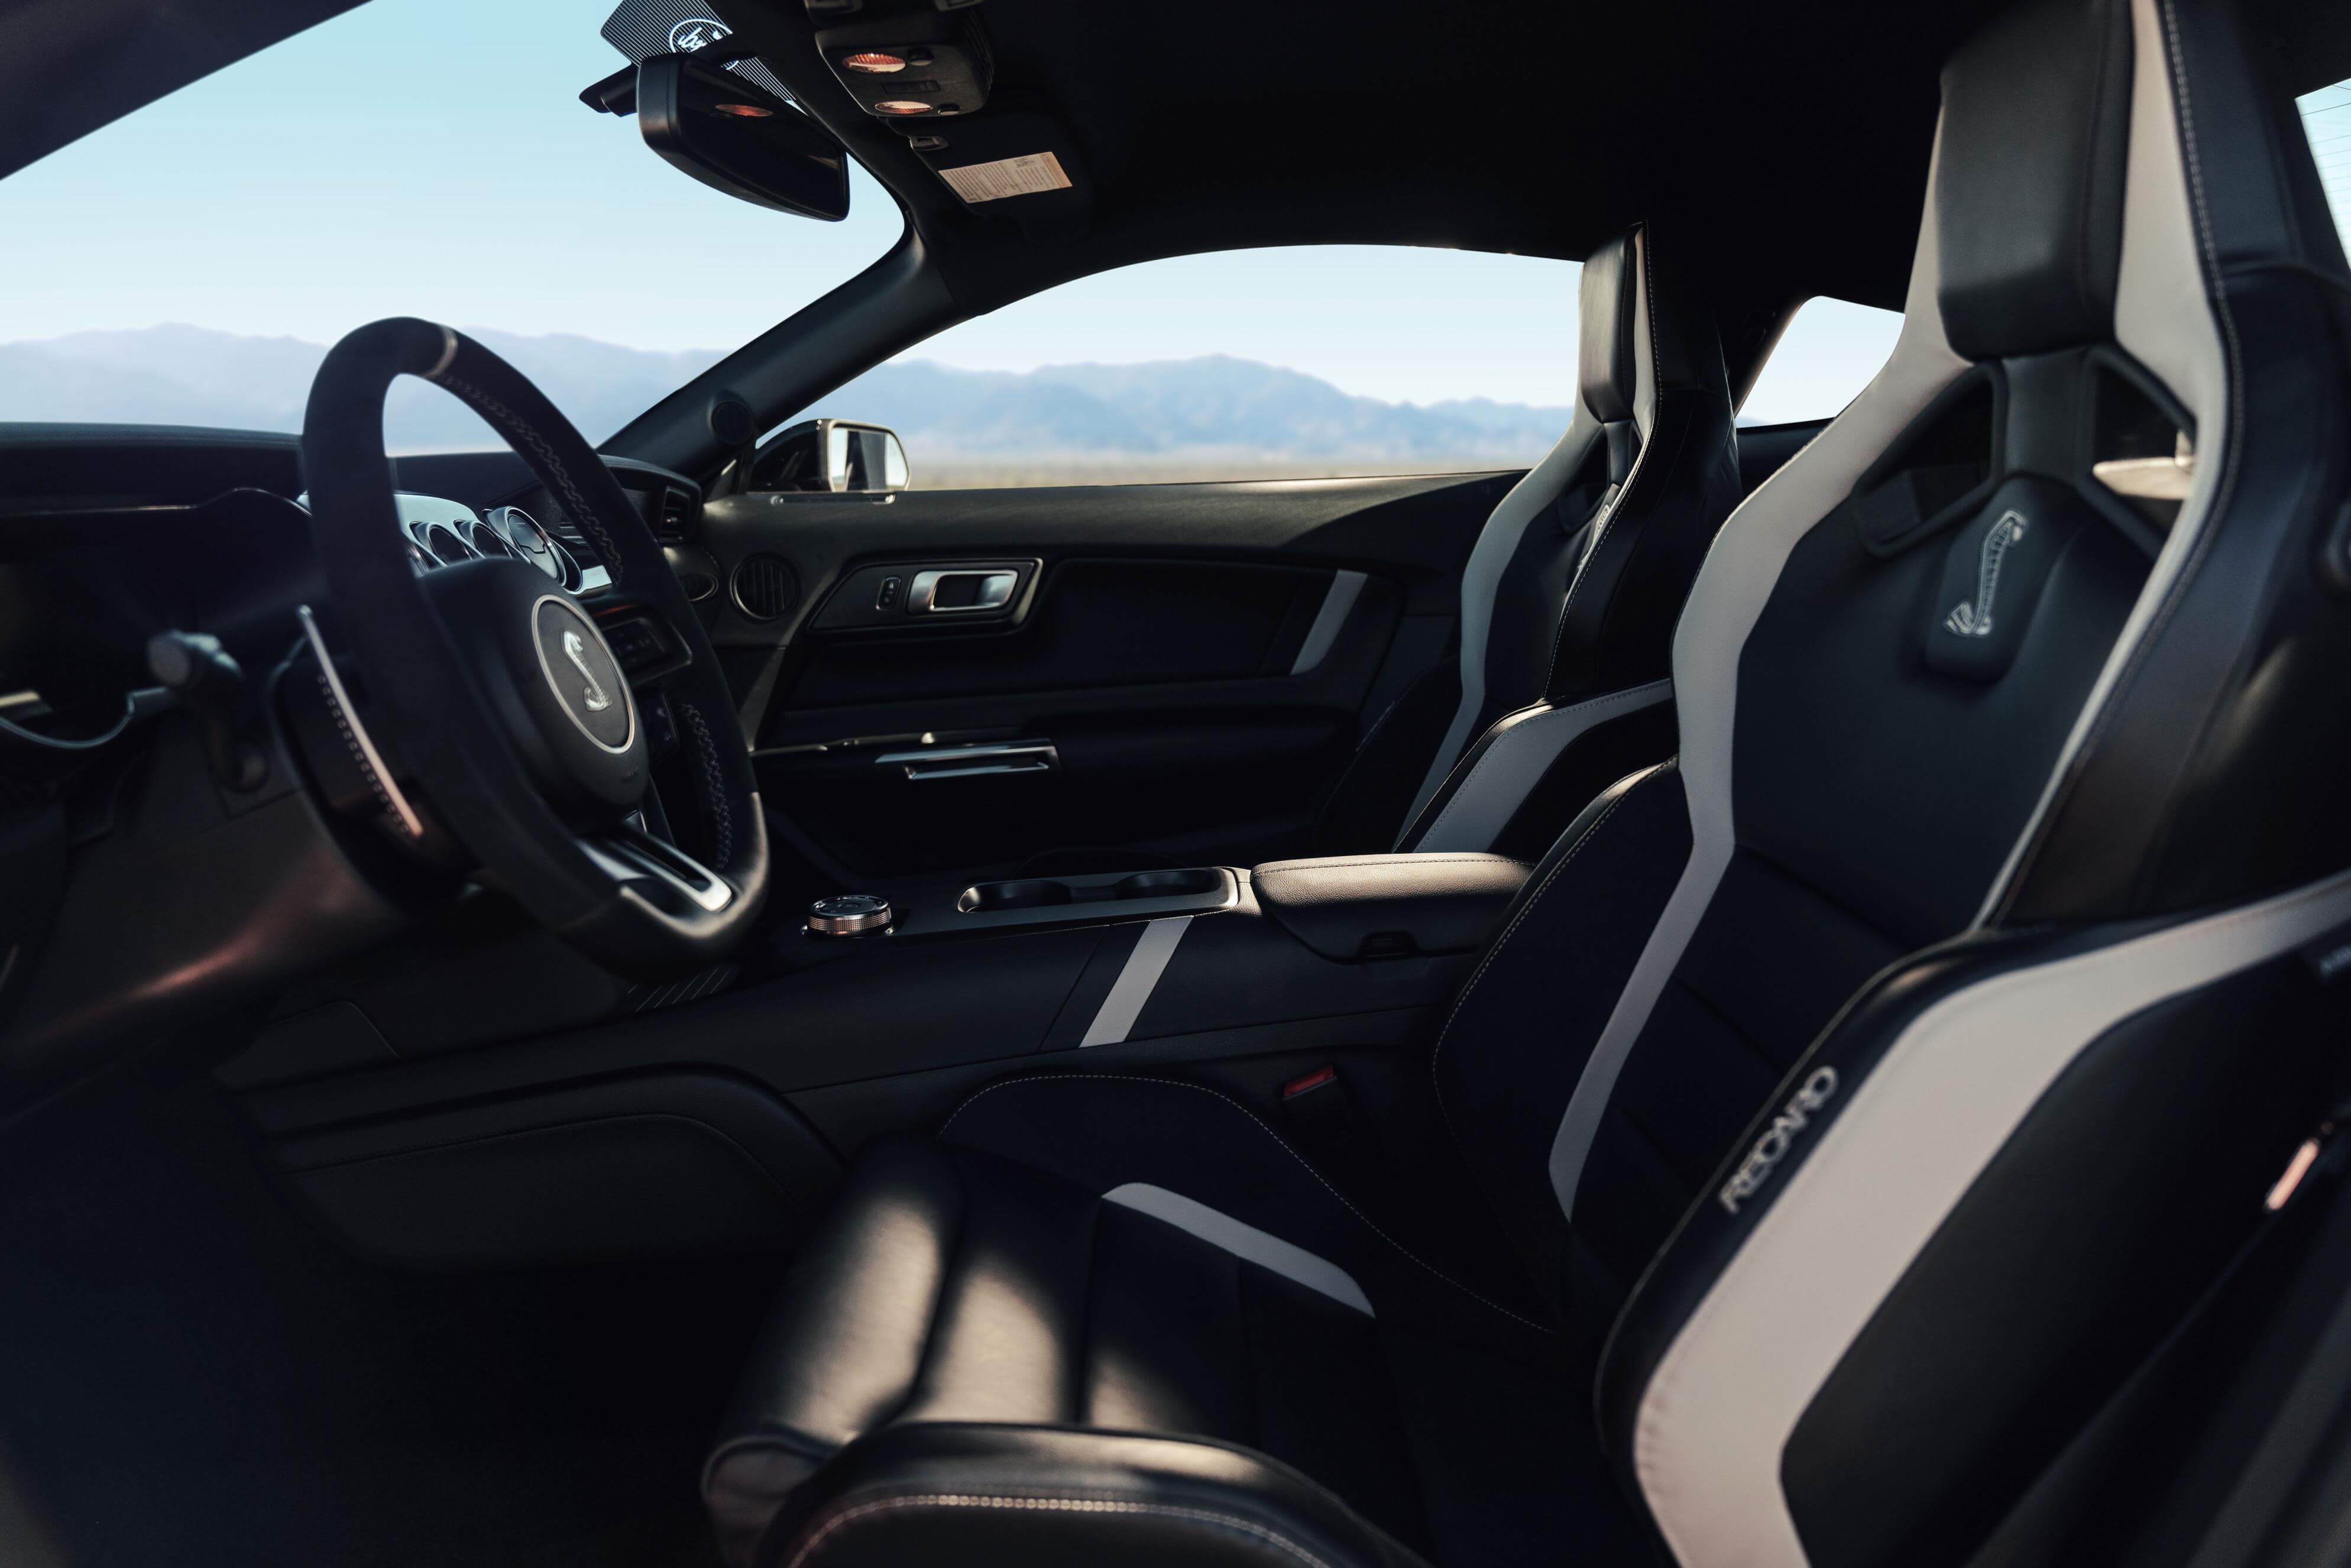 Ford Mustang Shelby GT500 2020: interior